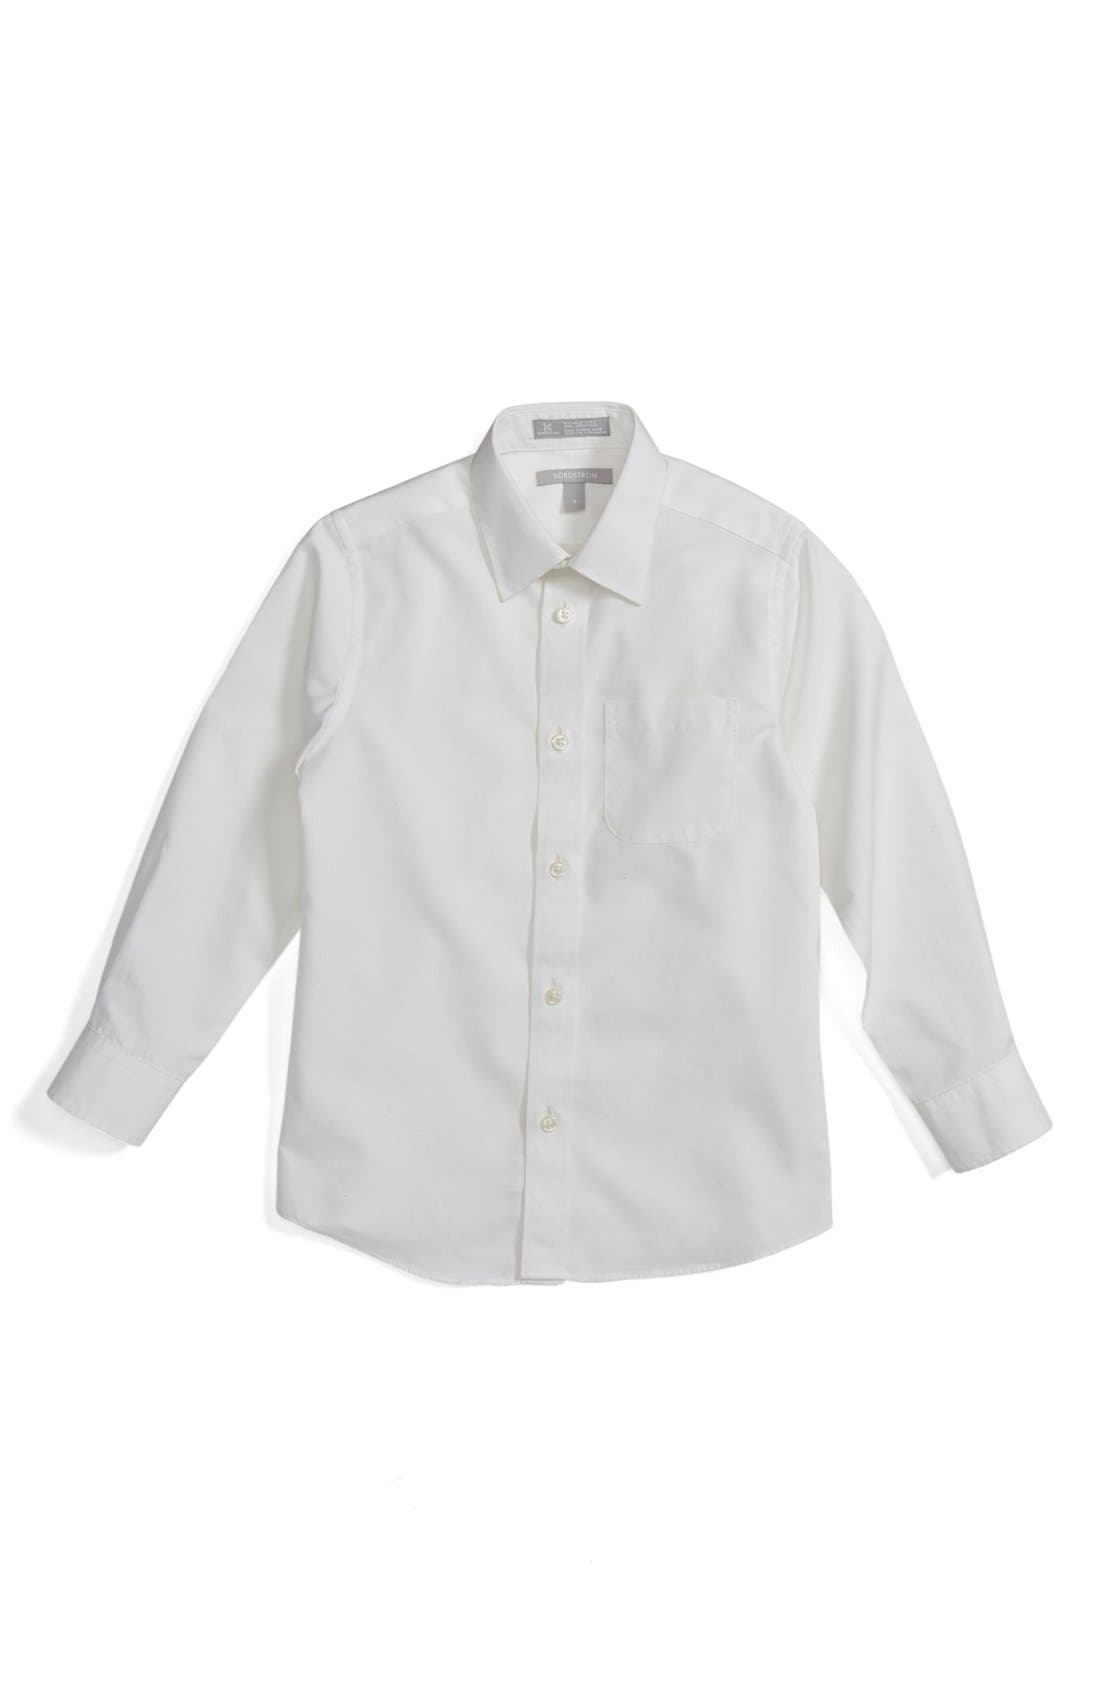 Smartcare<sup>™</sup> Dress Shirt,                             Main thumbnail 1, color,                             WHITE